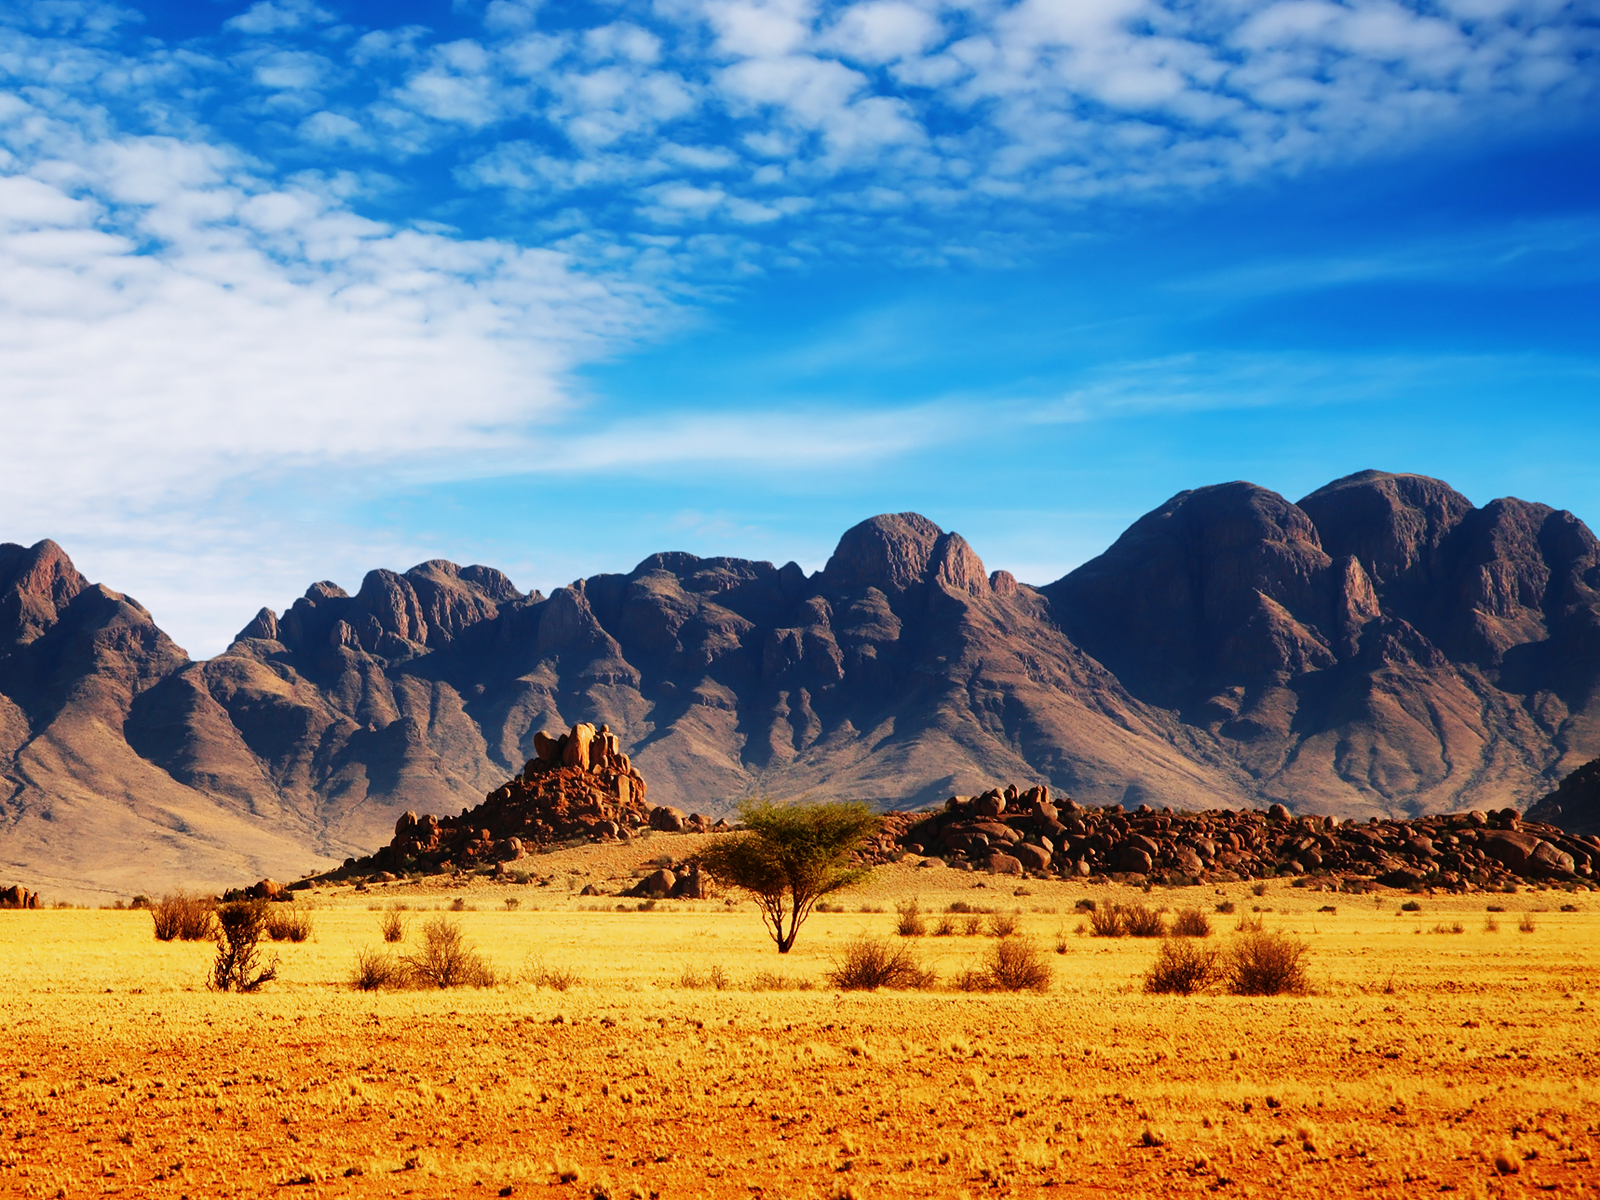 away half our justice system spring desert wallpaper inkbluesky 1600x1200